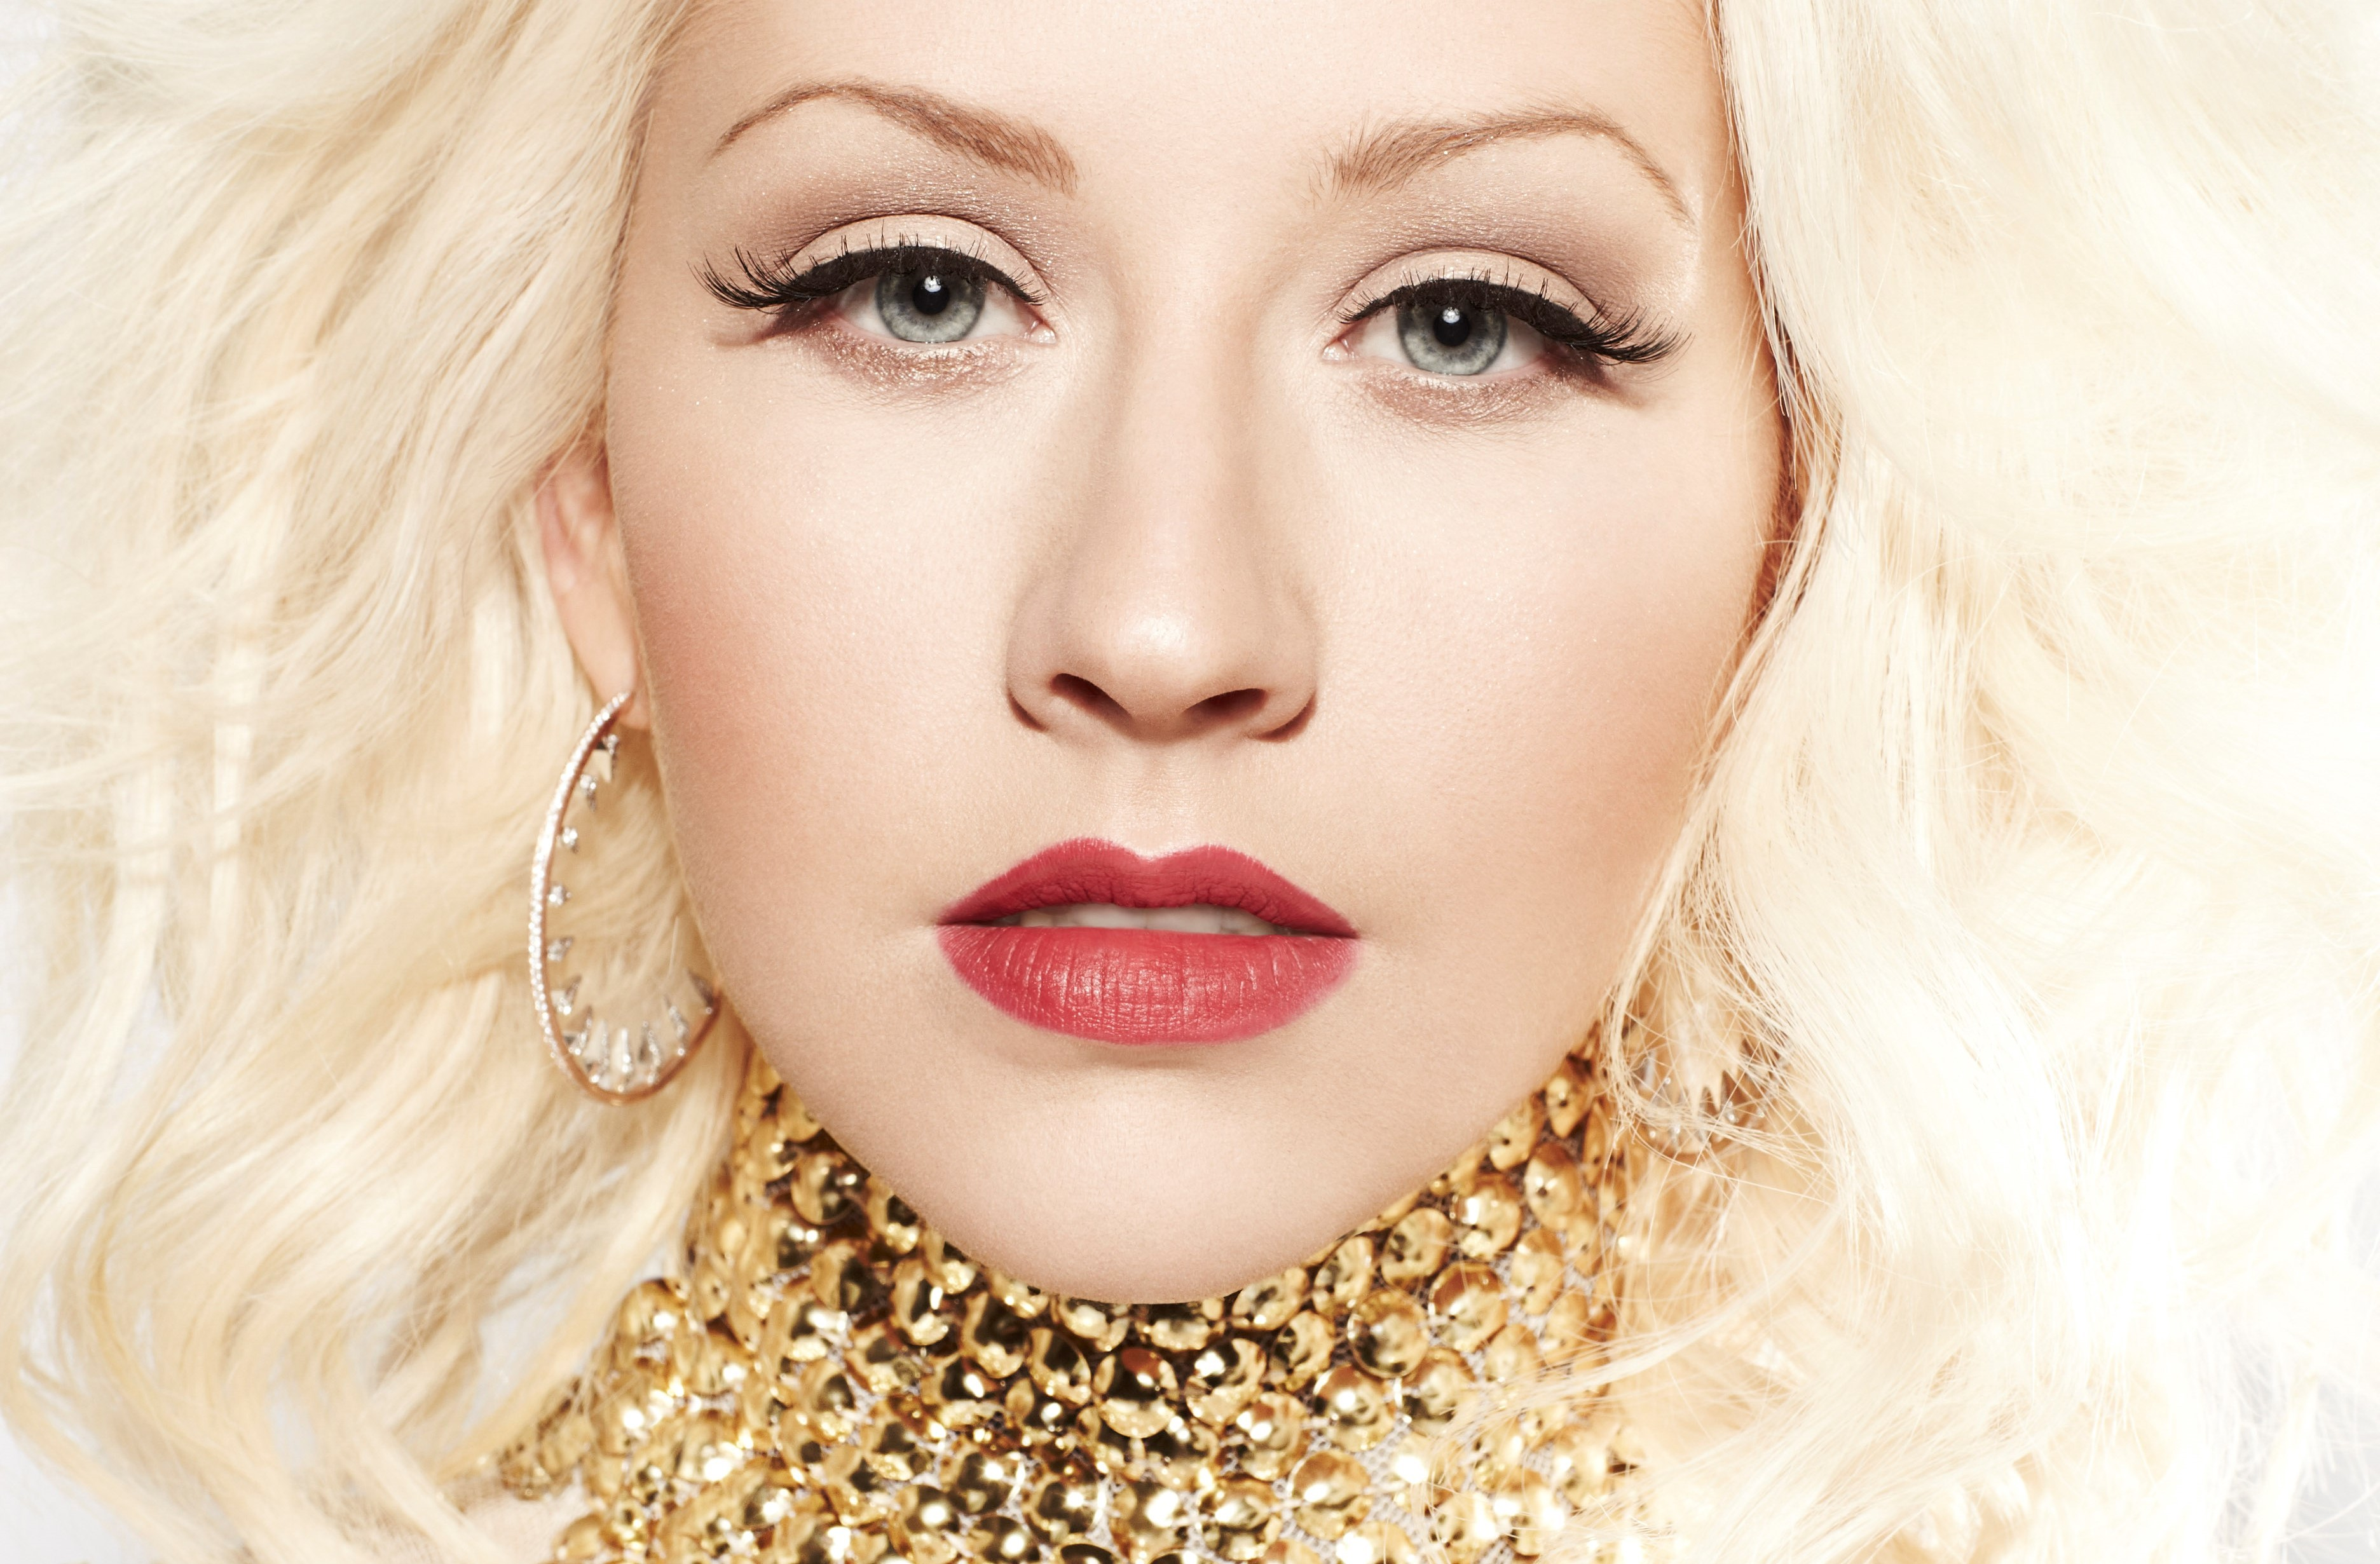 Christina Aguilera Wallpapers Pictures Images 3744x2461